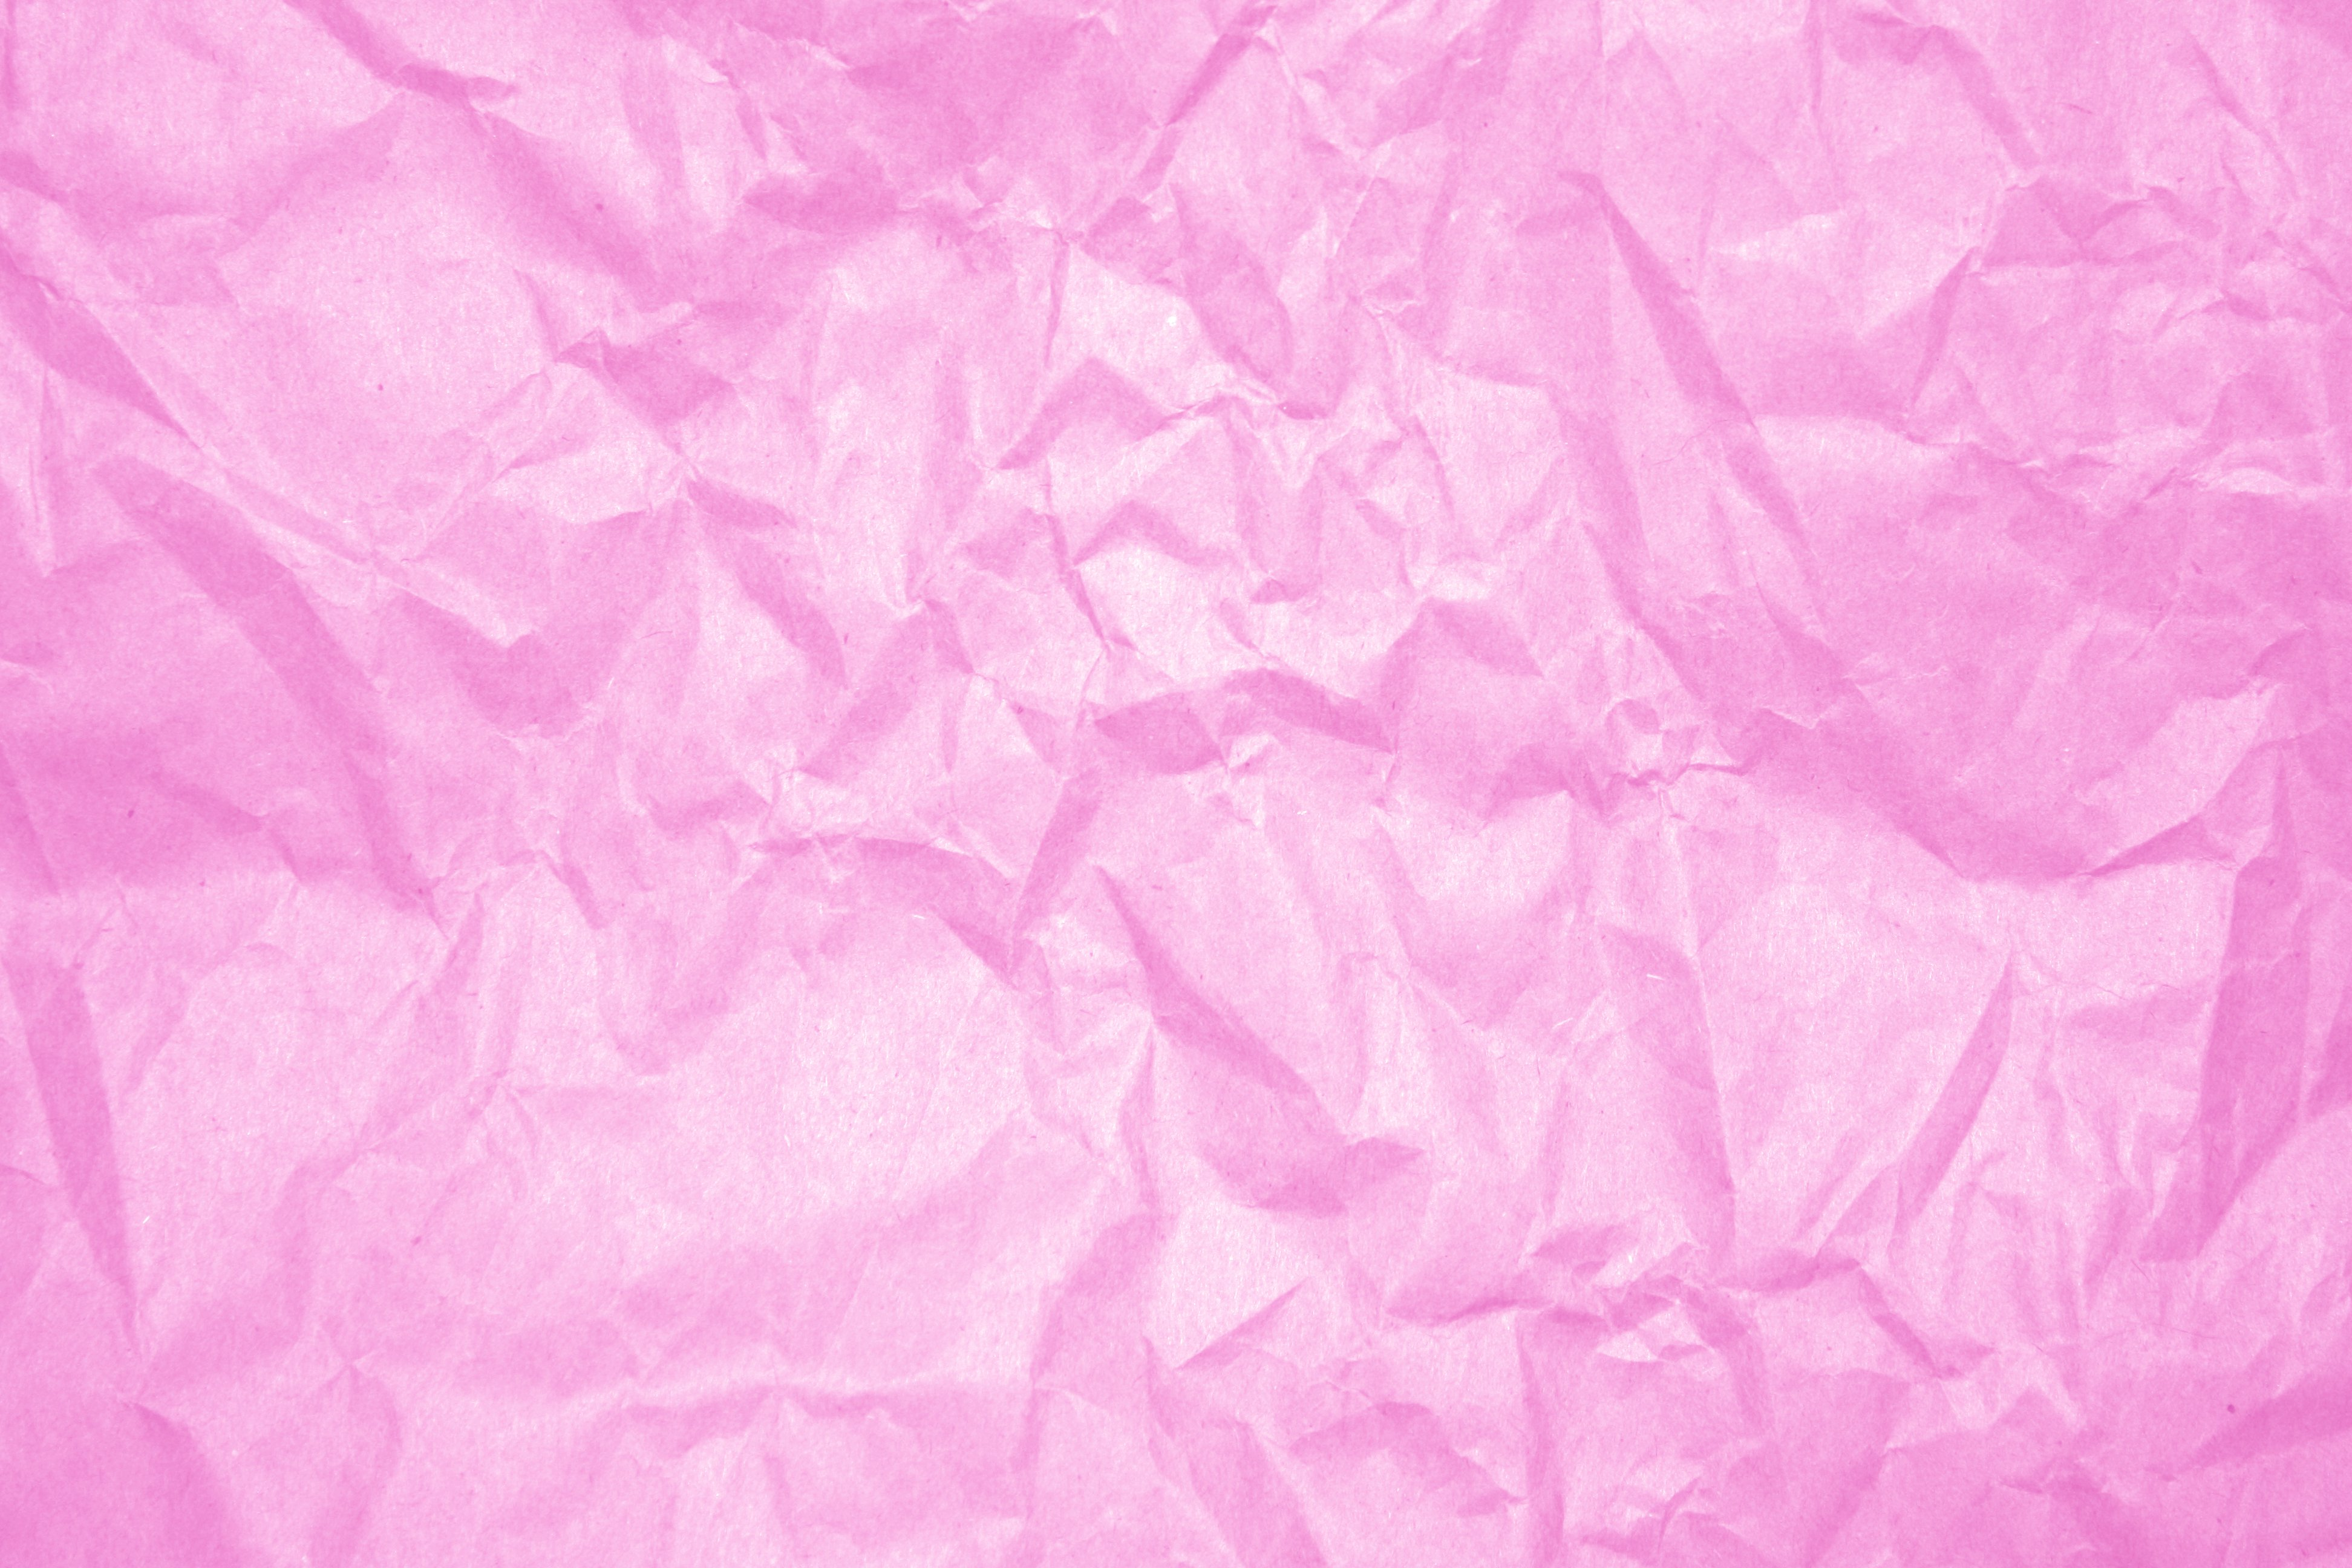 Crumpled Pink Paper Texture Picture | Free Photograph | Photos ...